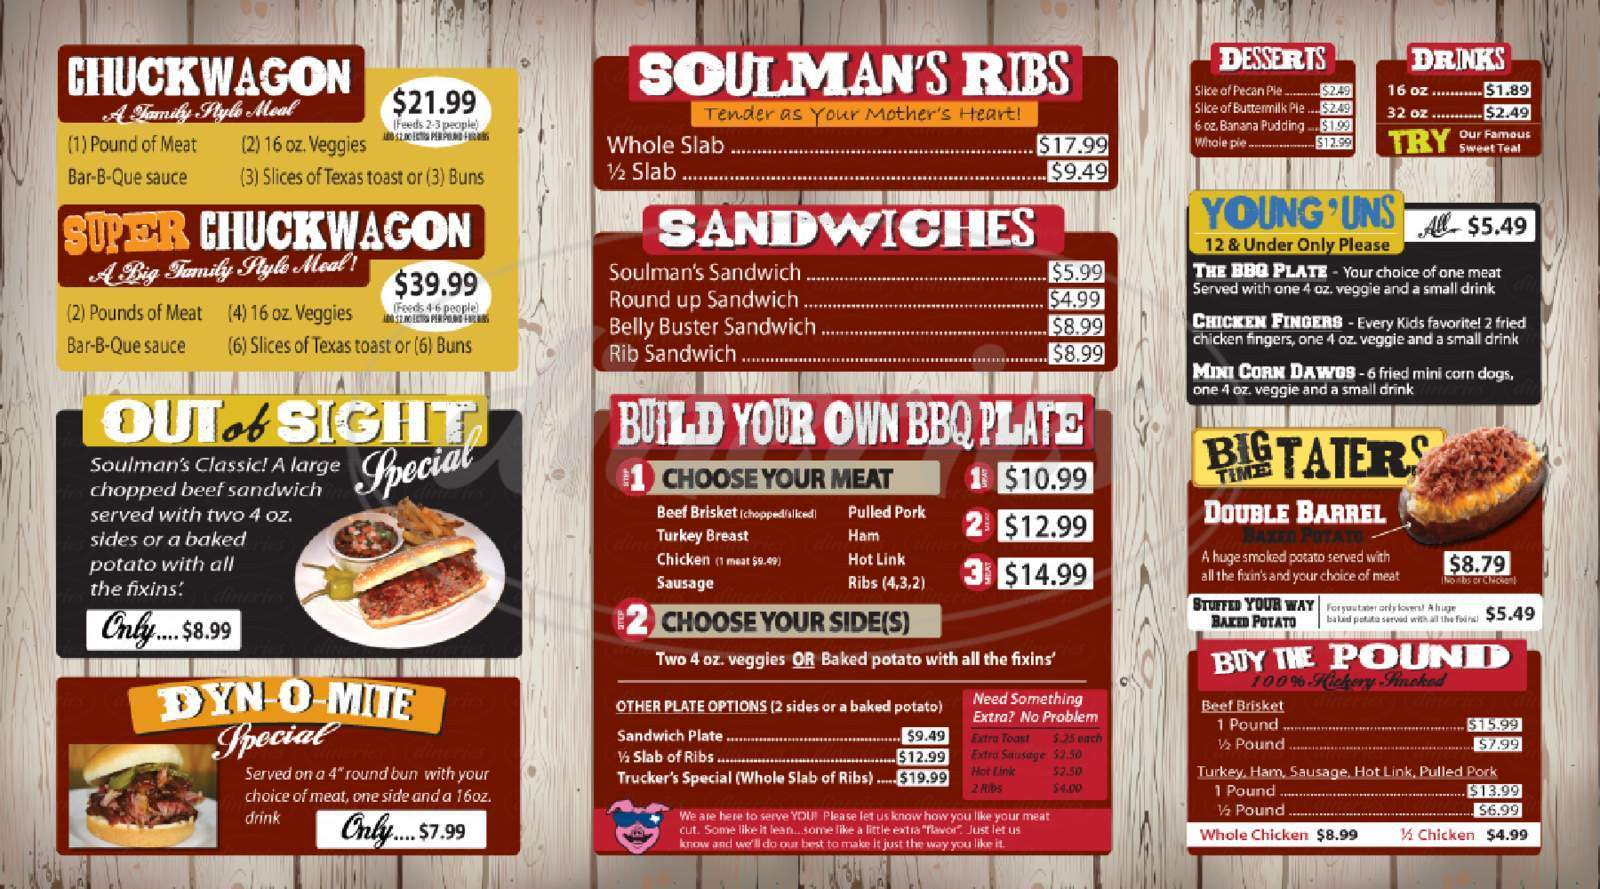 menu for Soulman's Bar-B-Que